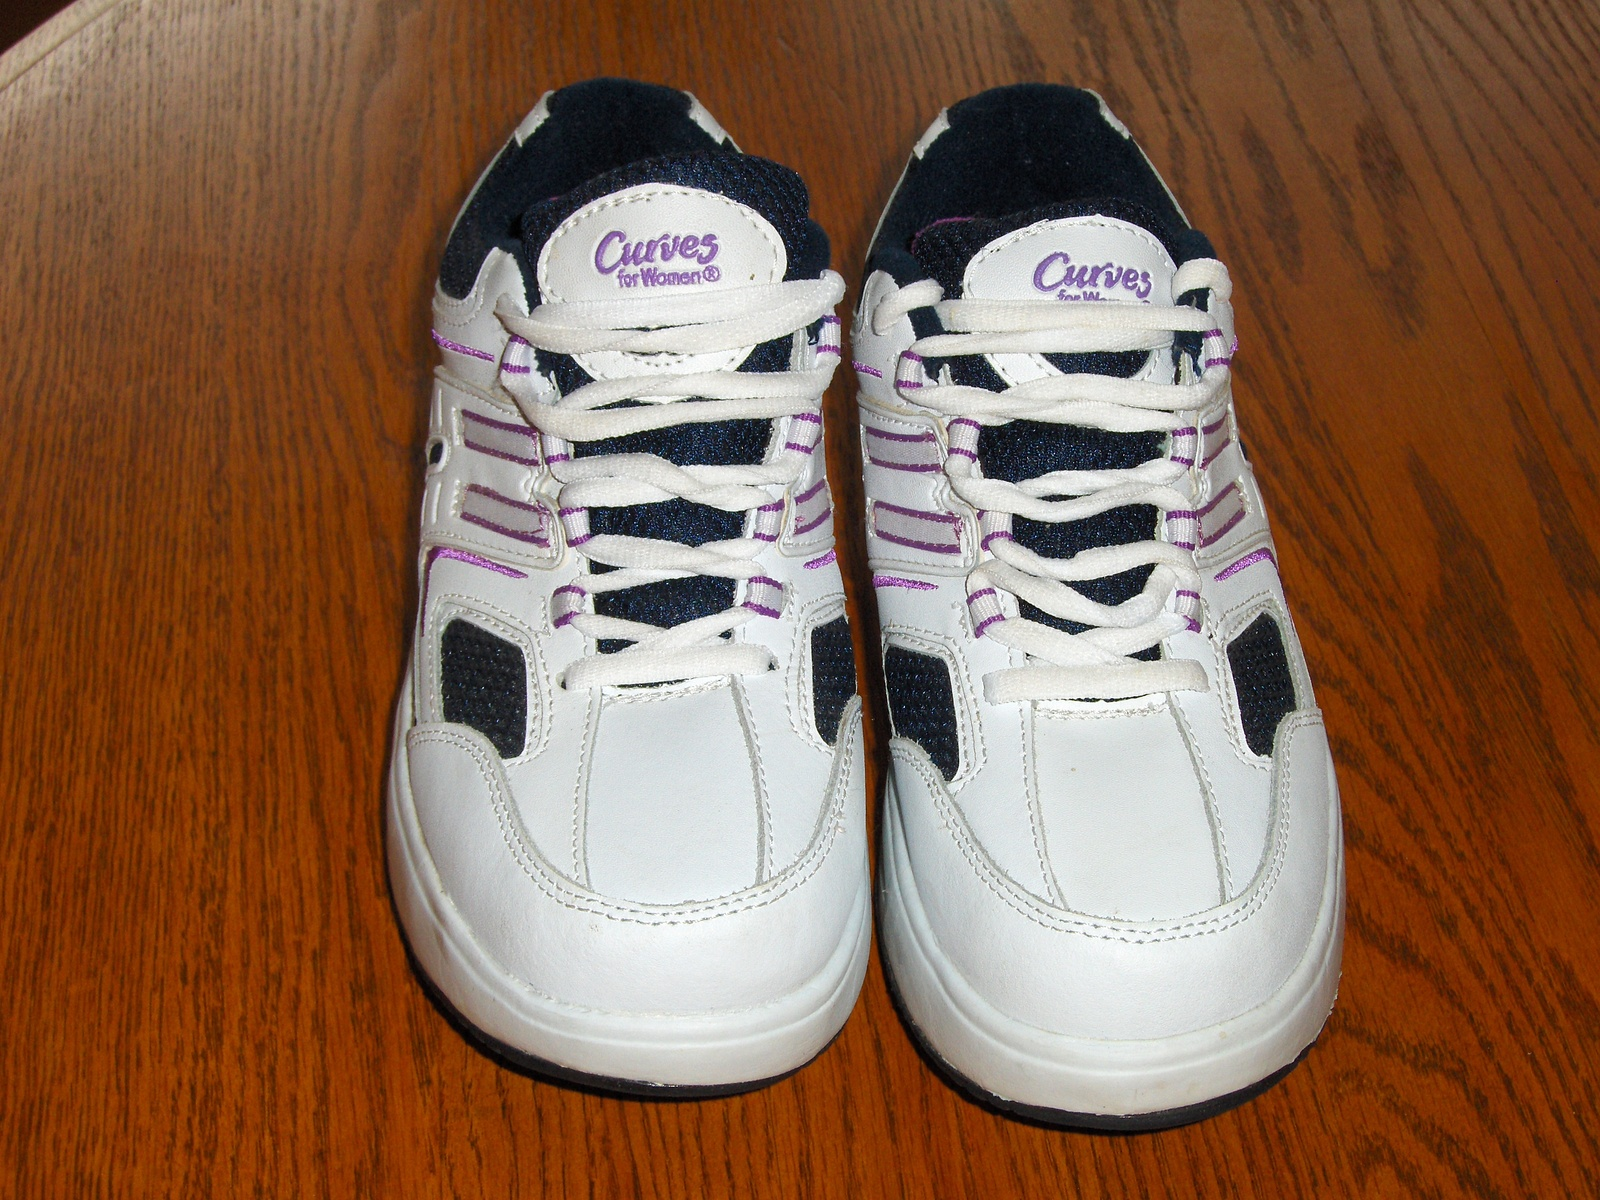 Avon Curves Leg Toning Shoes Exercise Walking Jogging 8 New Purple and White